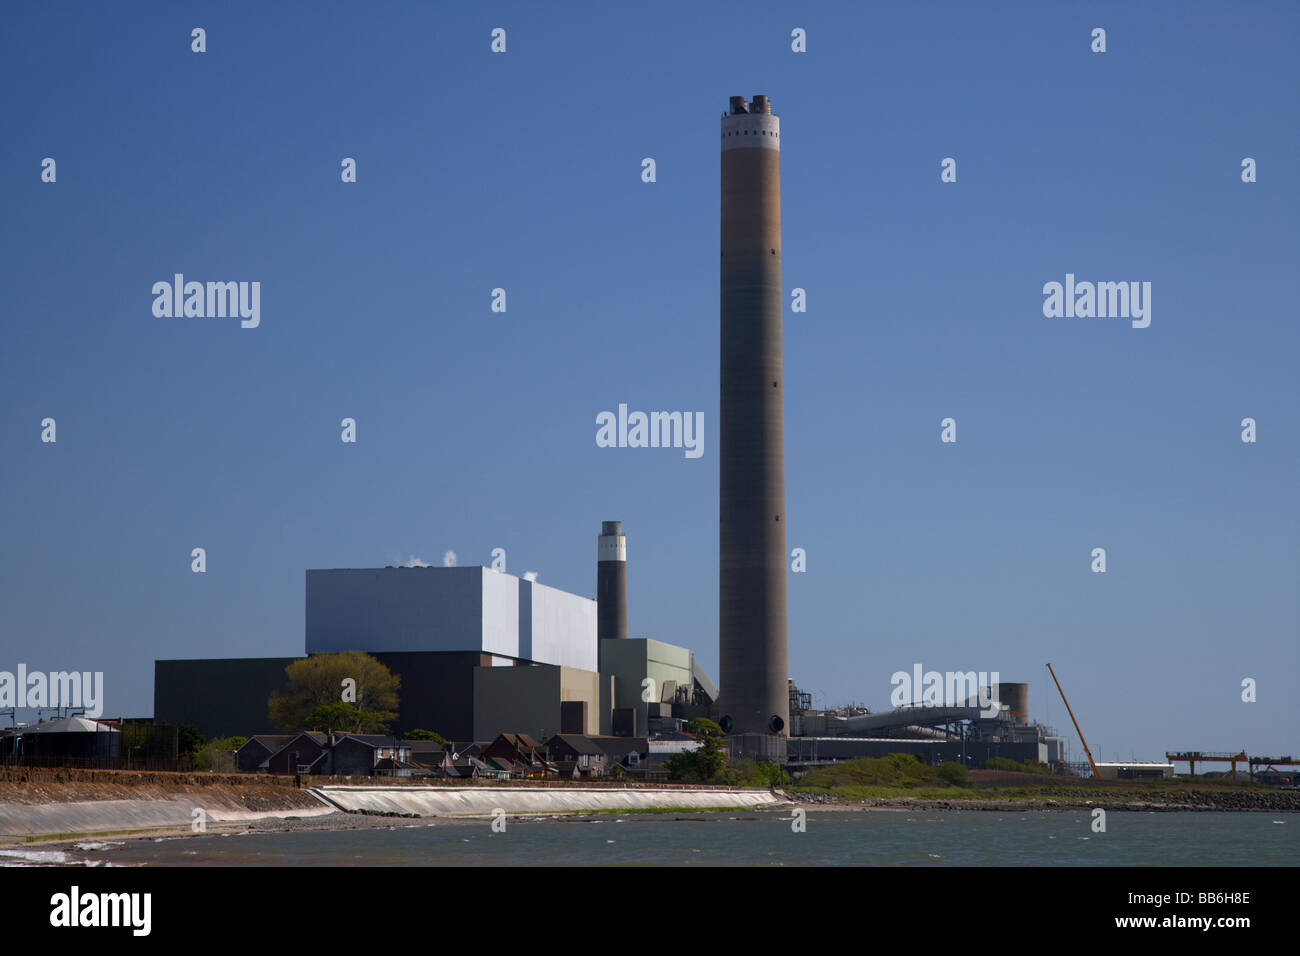 kilroot power station dual coal oil fired plant carrickfergus county antrim northern ireland uk owned by AES corporation - Stock Image